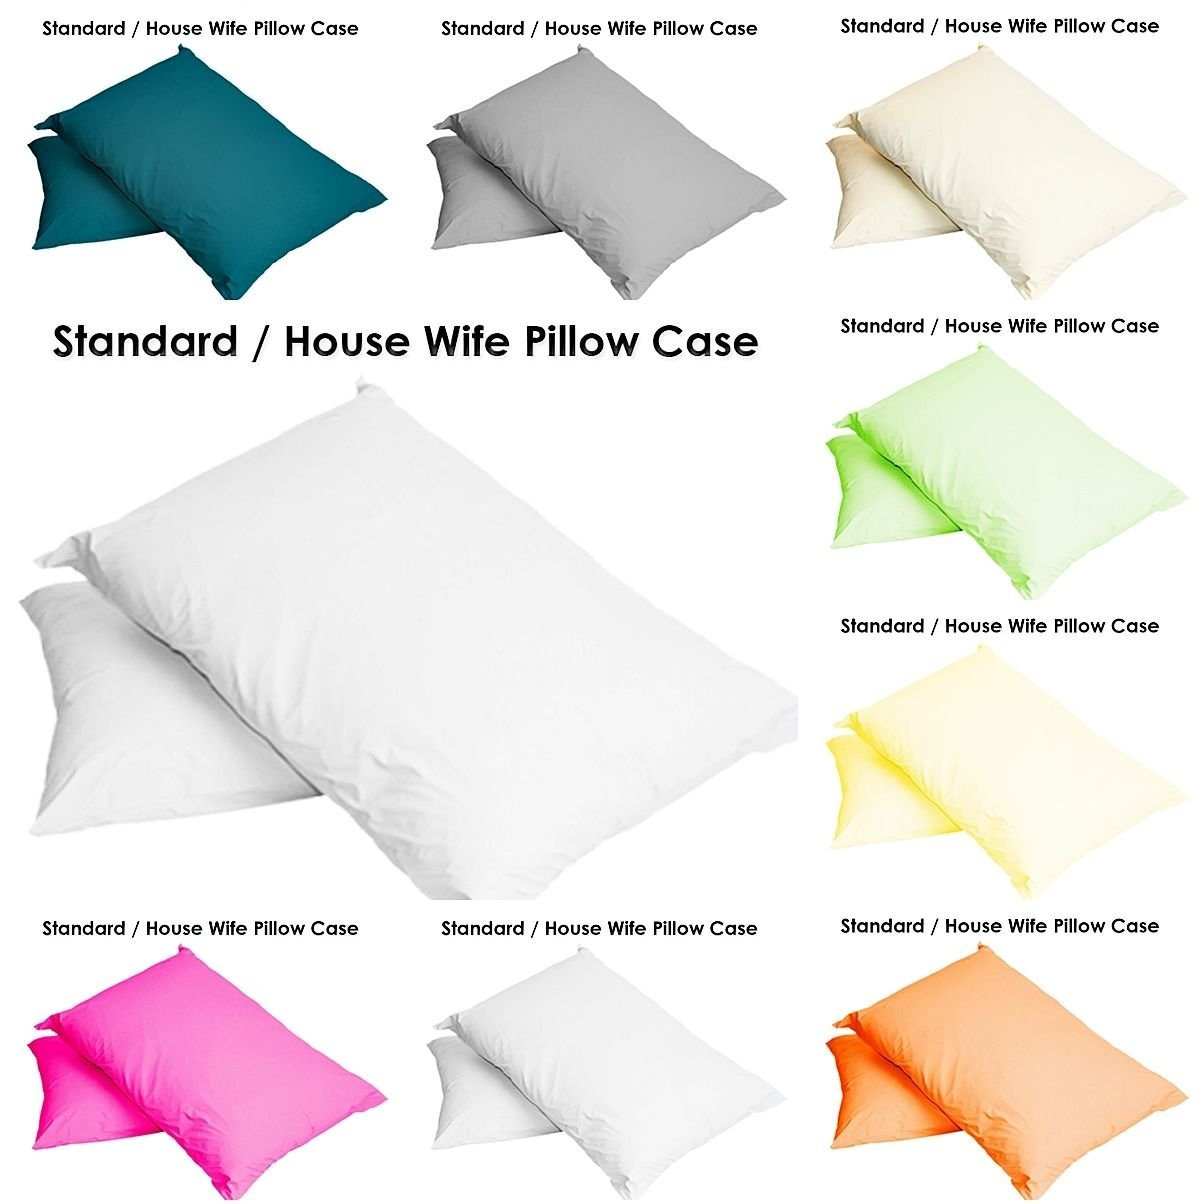 2 x PILLOW CASES HOUSEWIFE PLAIN COVER POLY COTTON BEDROOM LUXURY PAIR PACK (White) Autumn Nights